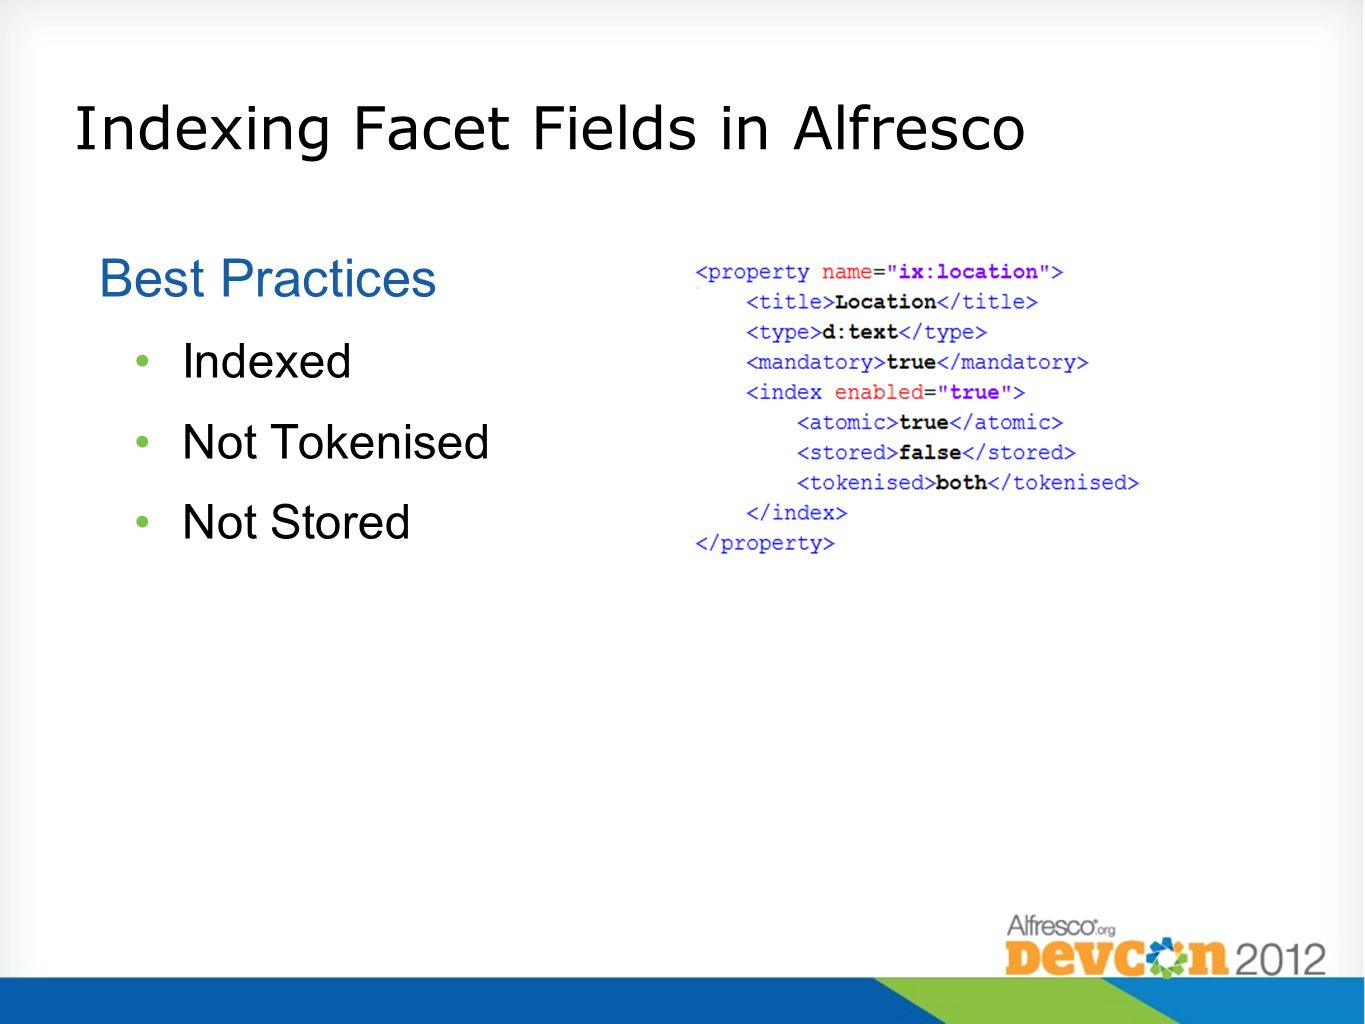 Indexing Facet Fields in Alfresco